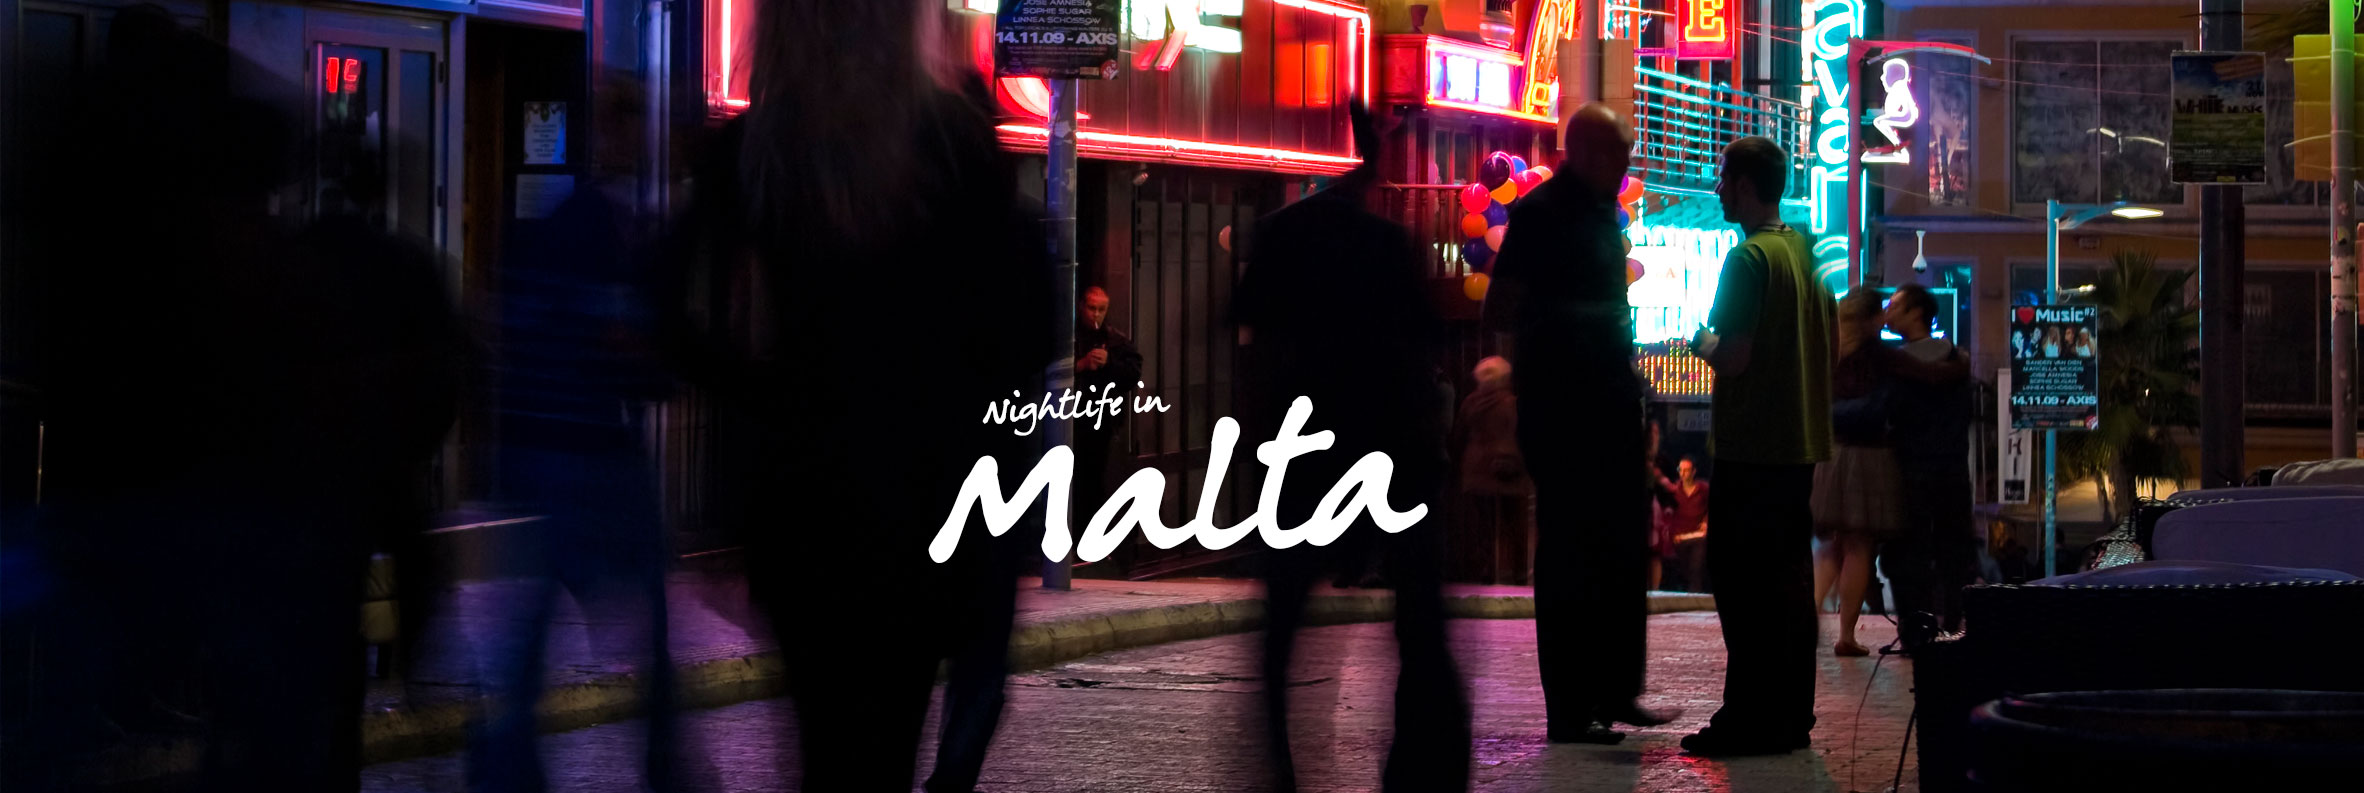 Malta Nightlife Guide - Top 7 clubbing + bar spots for the night-owls